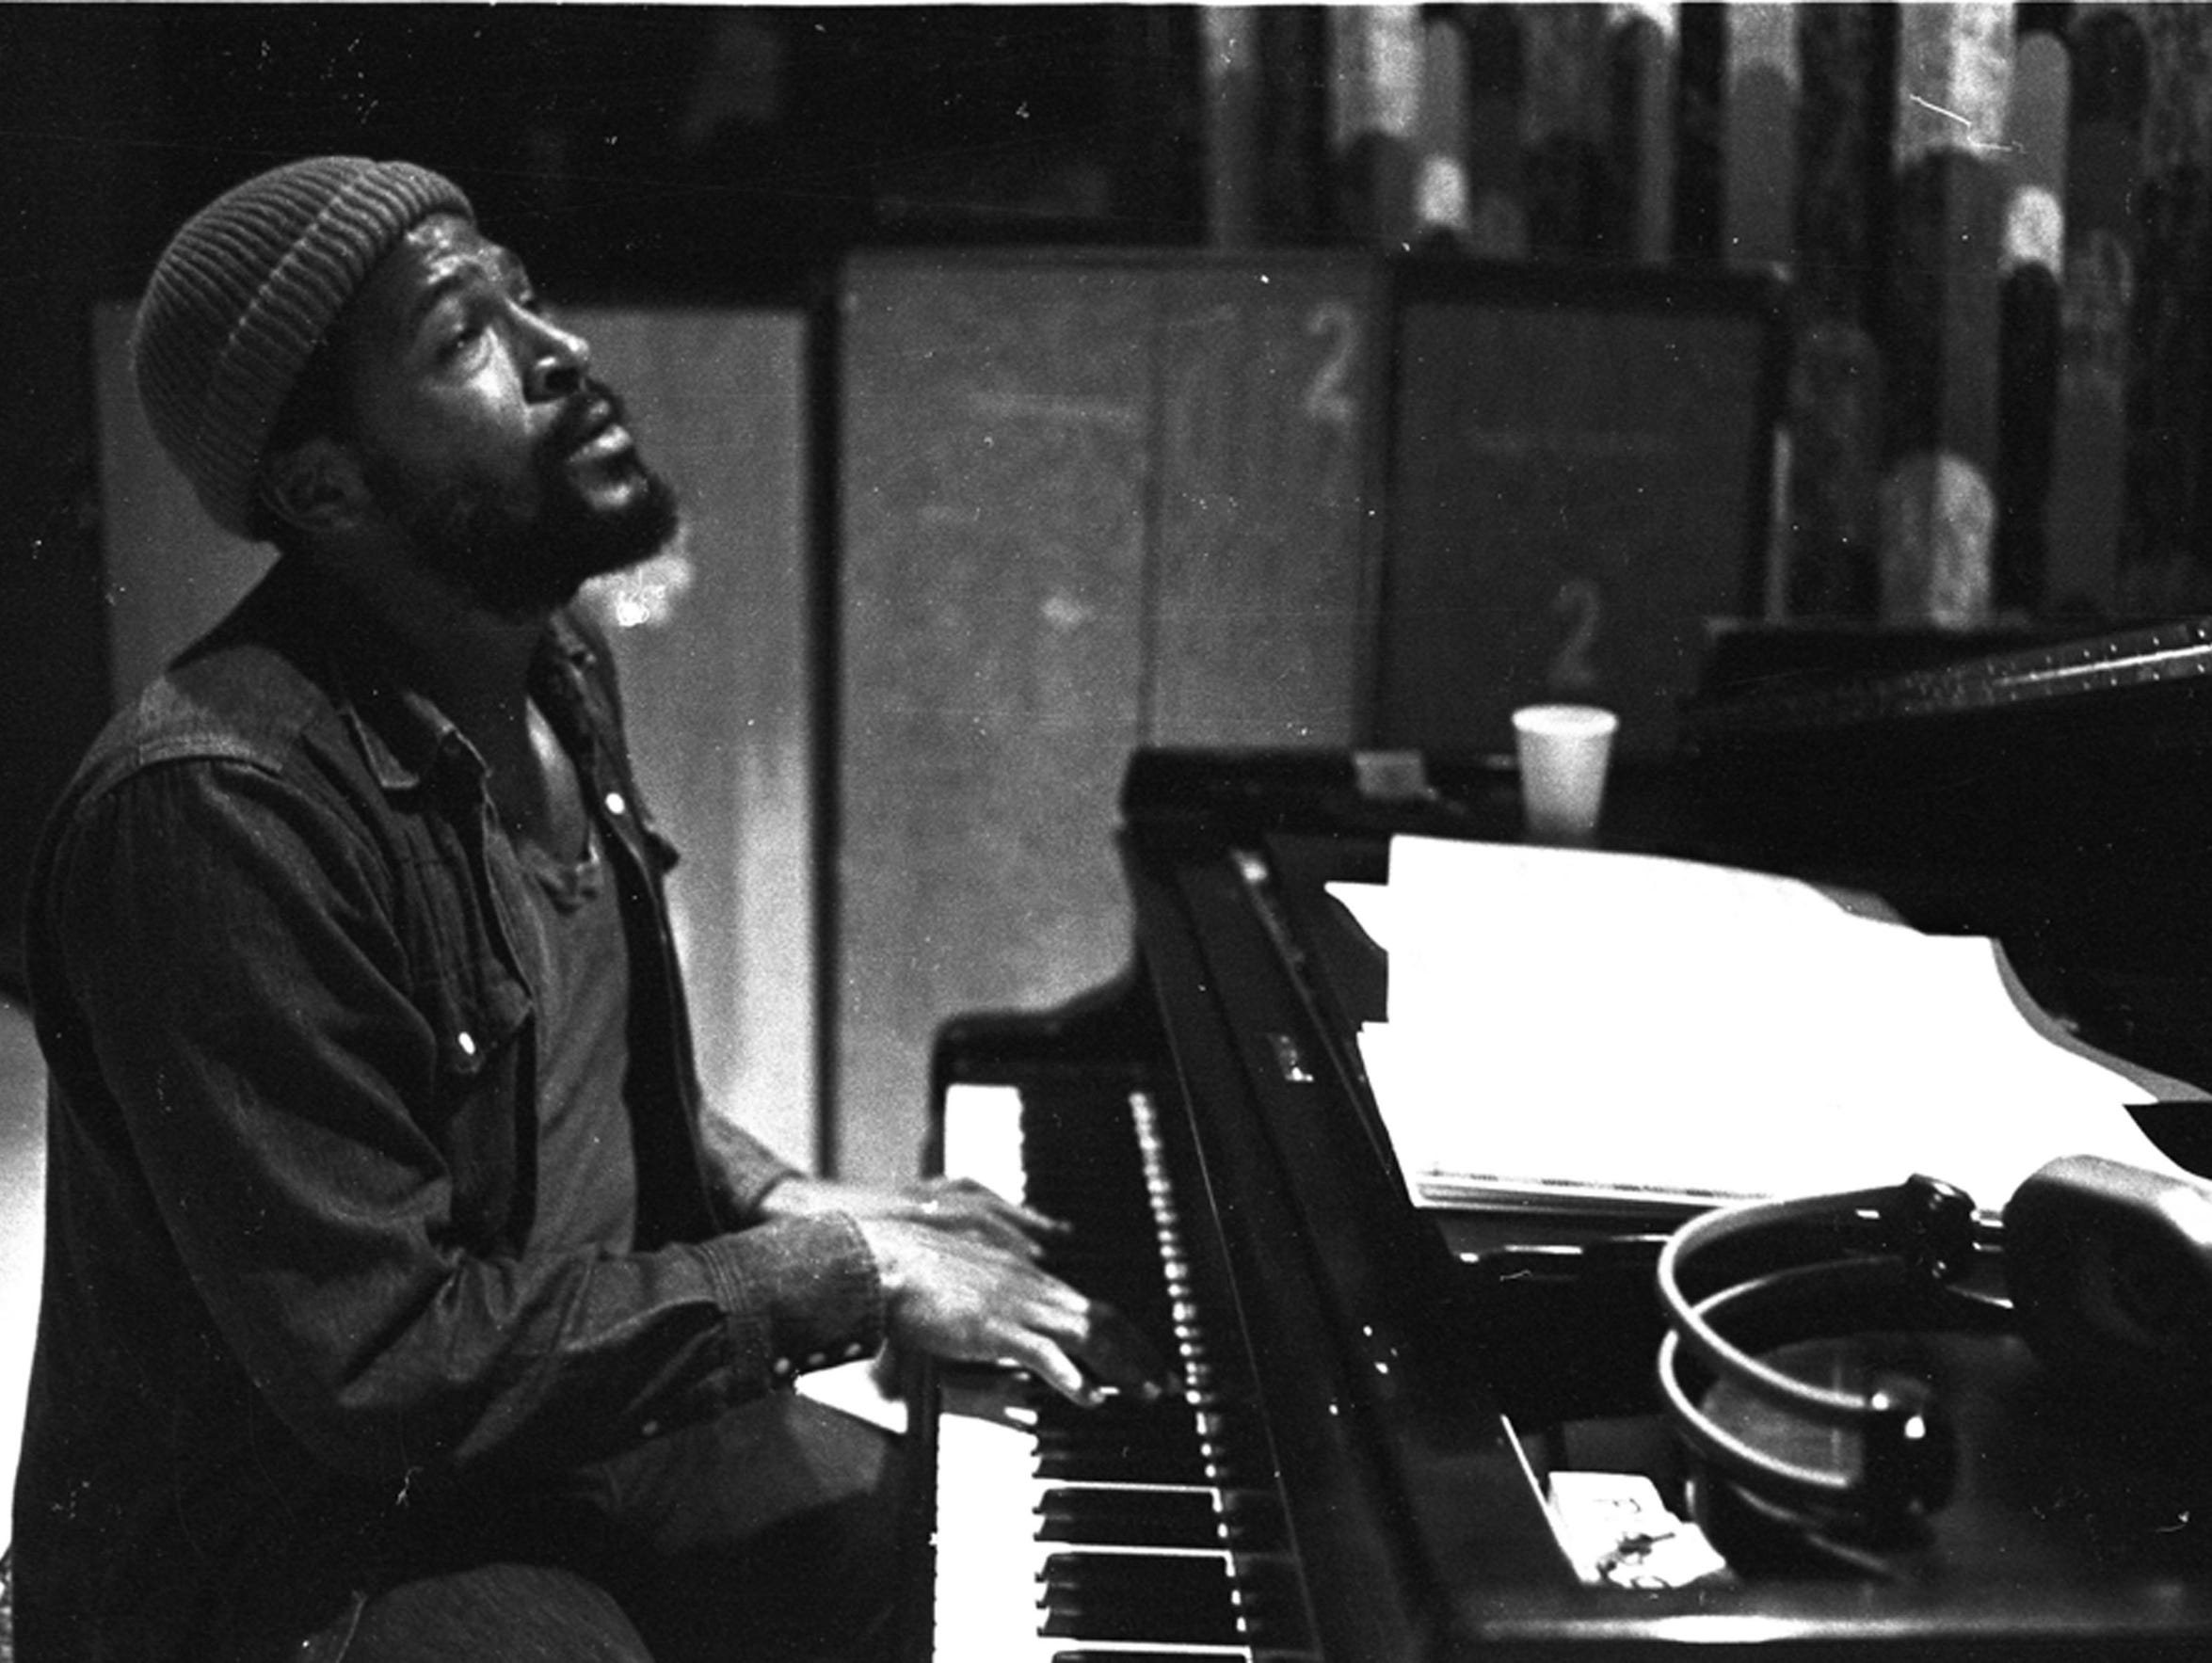 Marvin Gaye photographed at Golden West Studios for